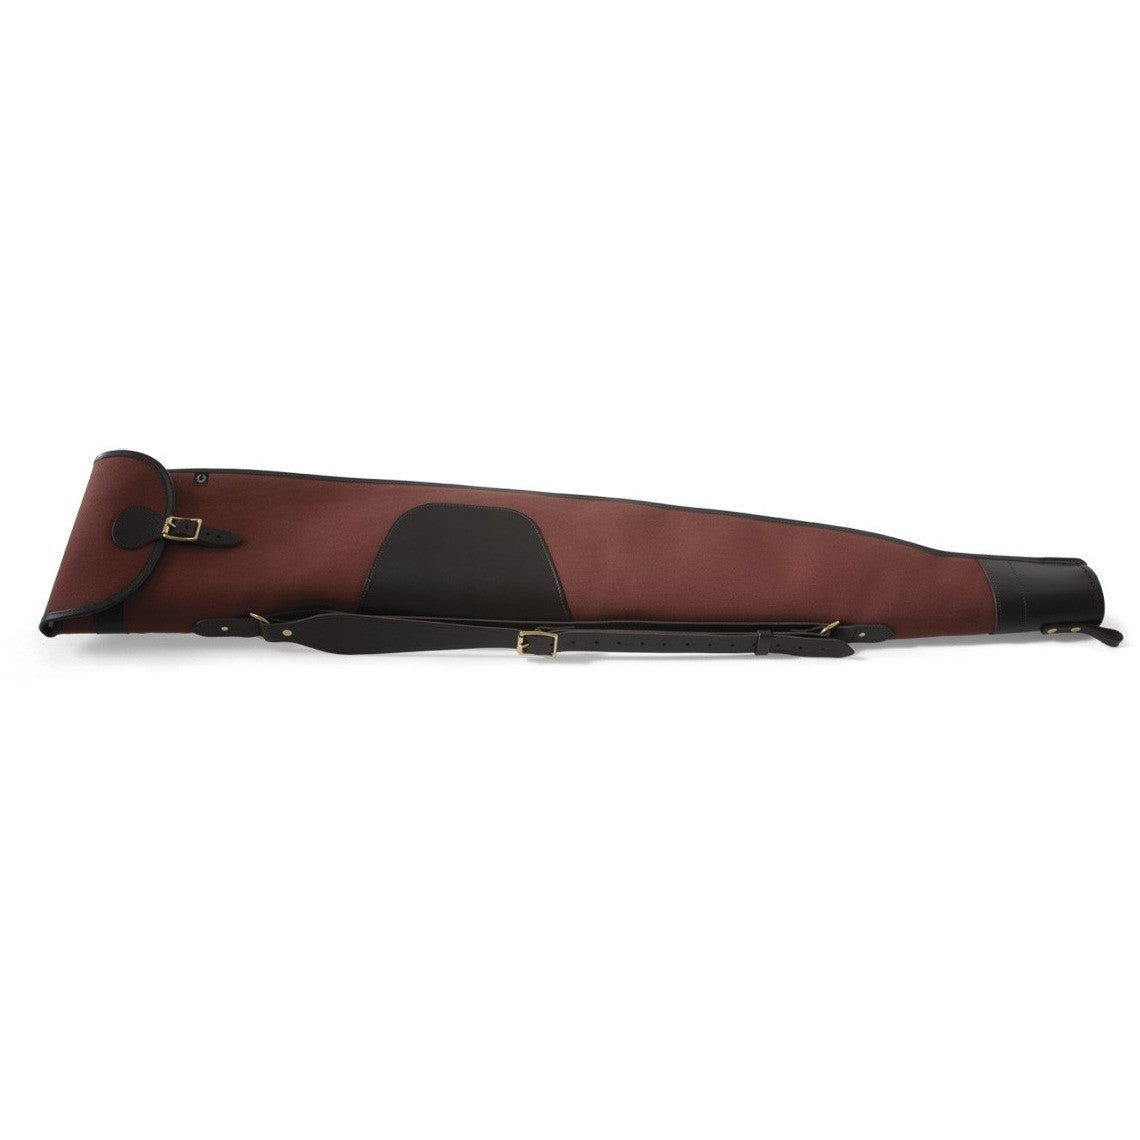 Croots Rosedale Canvas/Leather Bipod Rifle Slip (CRS6), www.clunycountrystore.co.uk